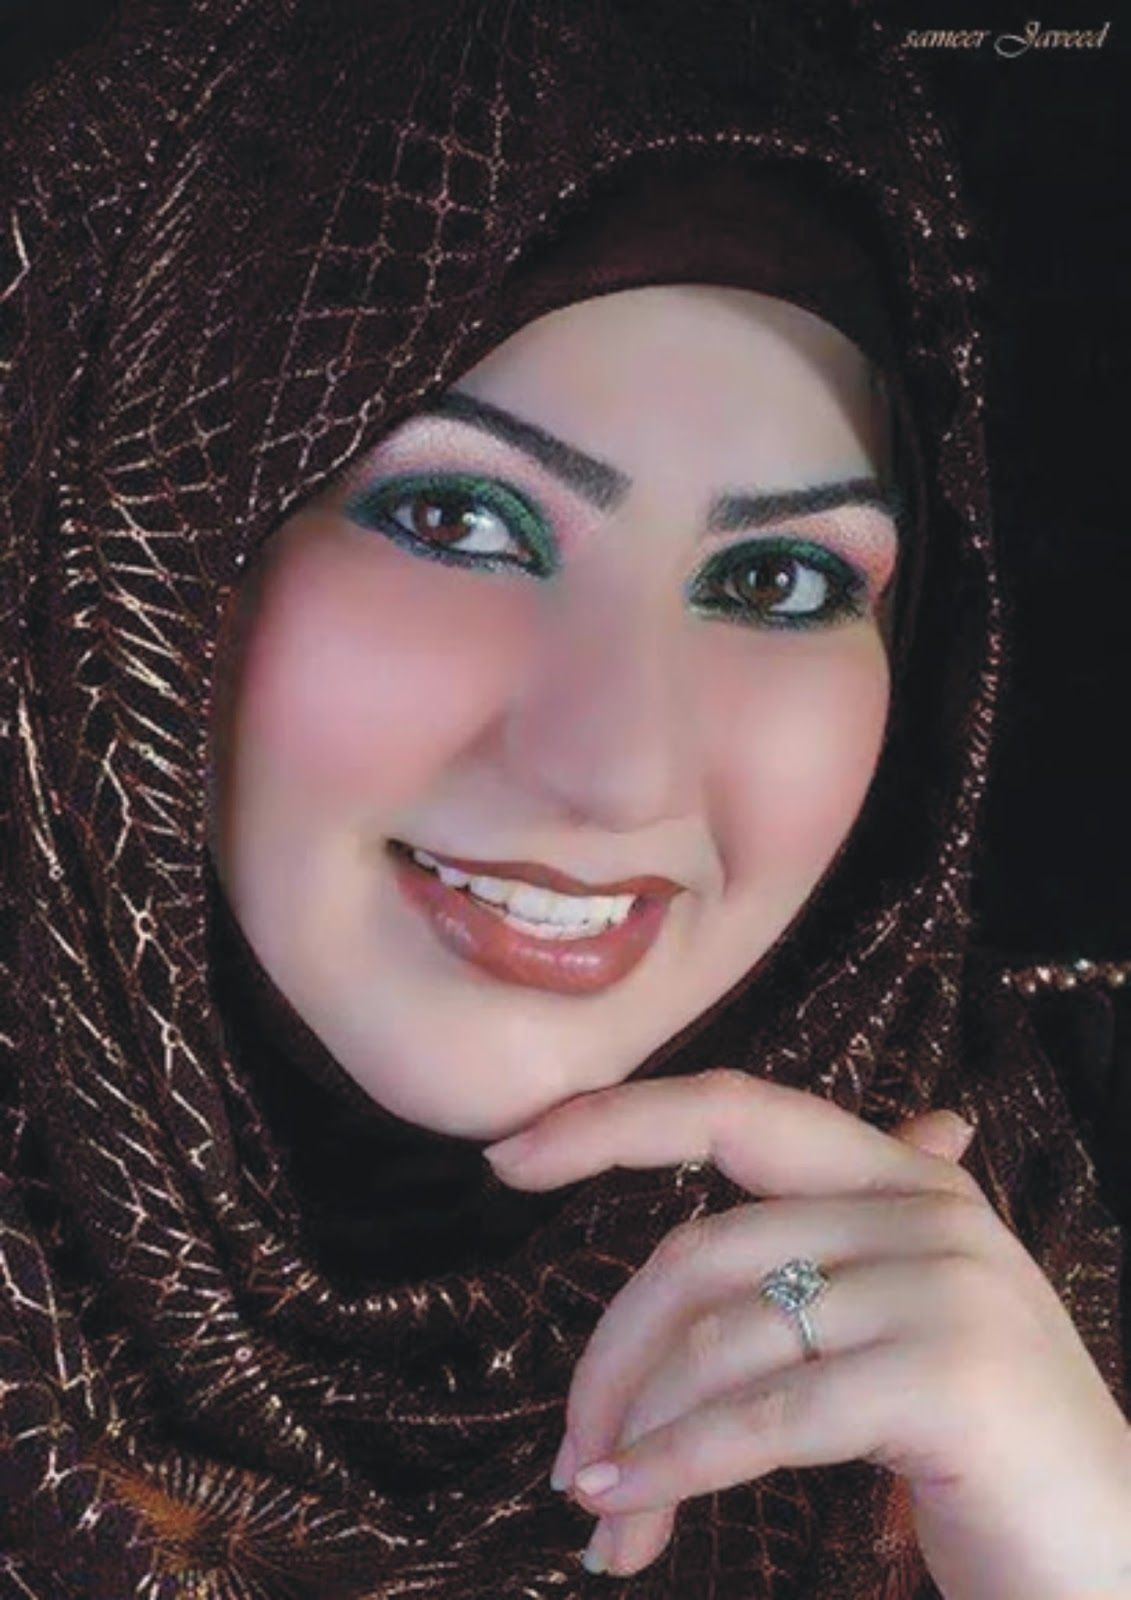 princeton single muslim girls Single muslim is the best way to meet other single muslims to for single muslims, muslim dating service, pakistani girl introductions or if you're looking for islamicintros or an ideal muslim marriage partner from other muslim, islamic, arabic and middle eastern backgrounds to complete your deen.